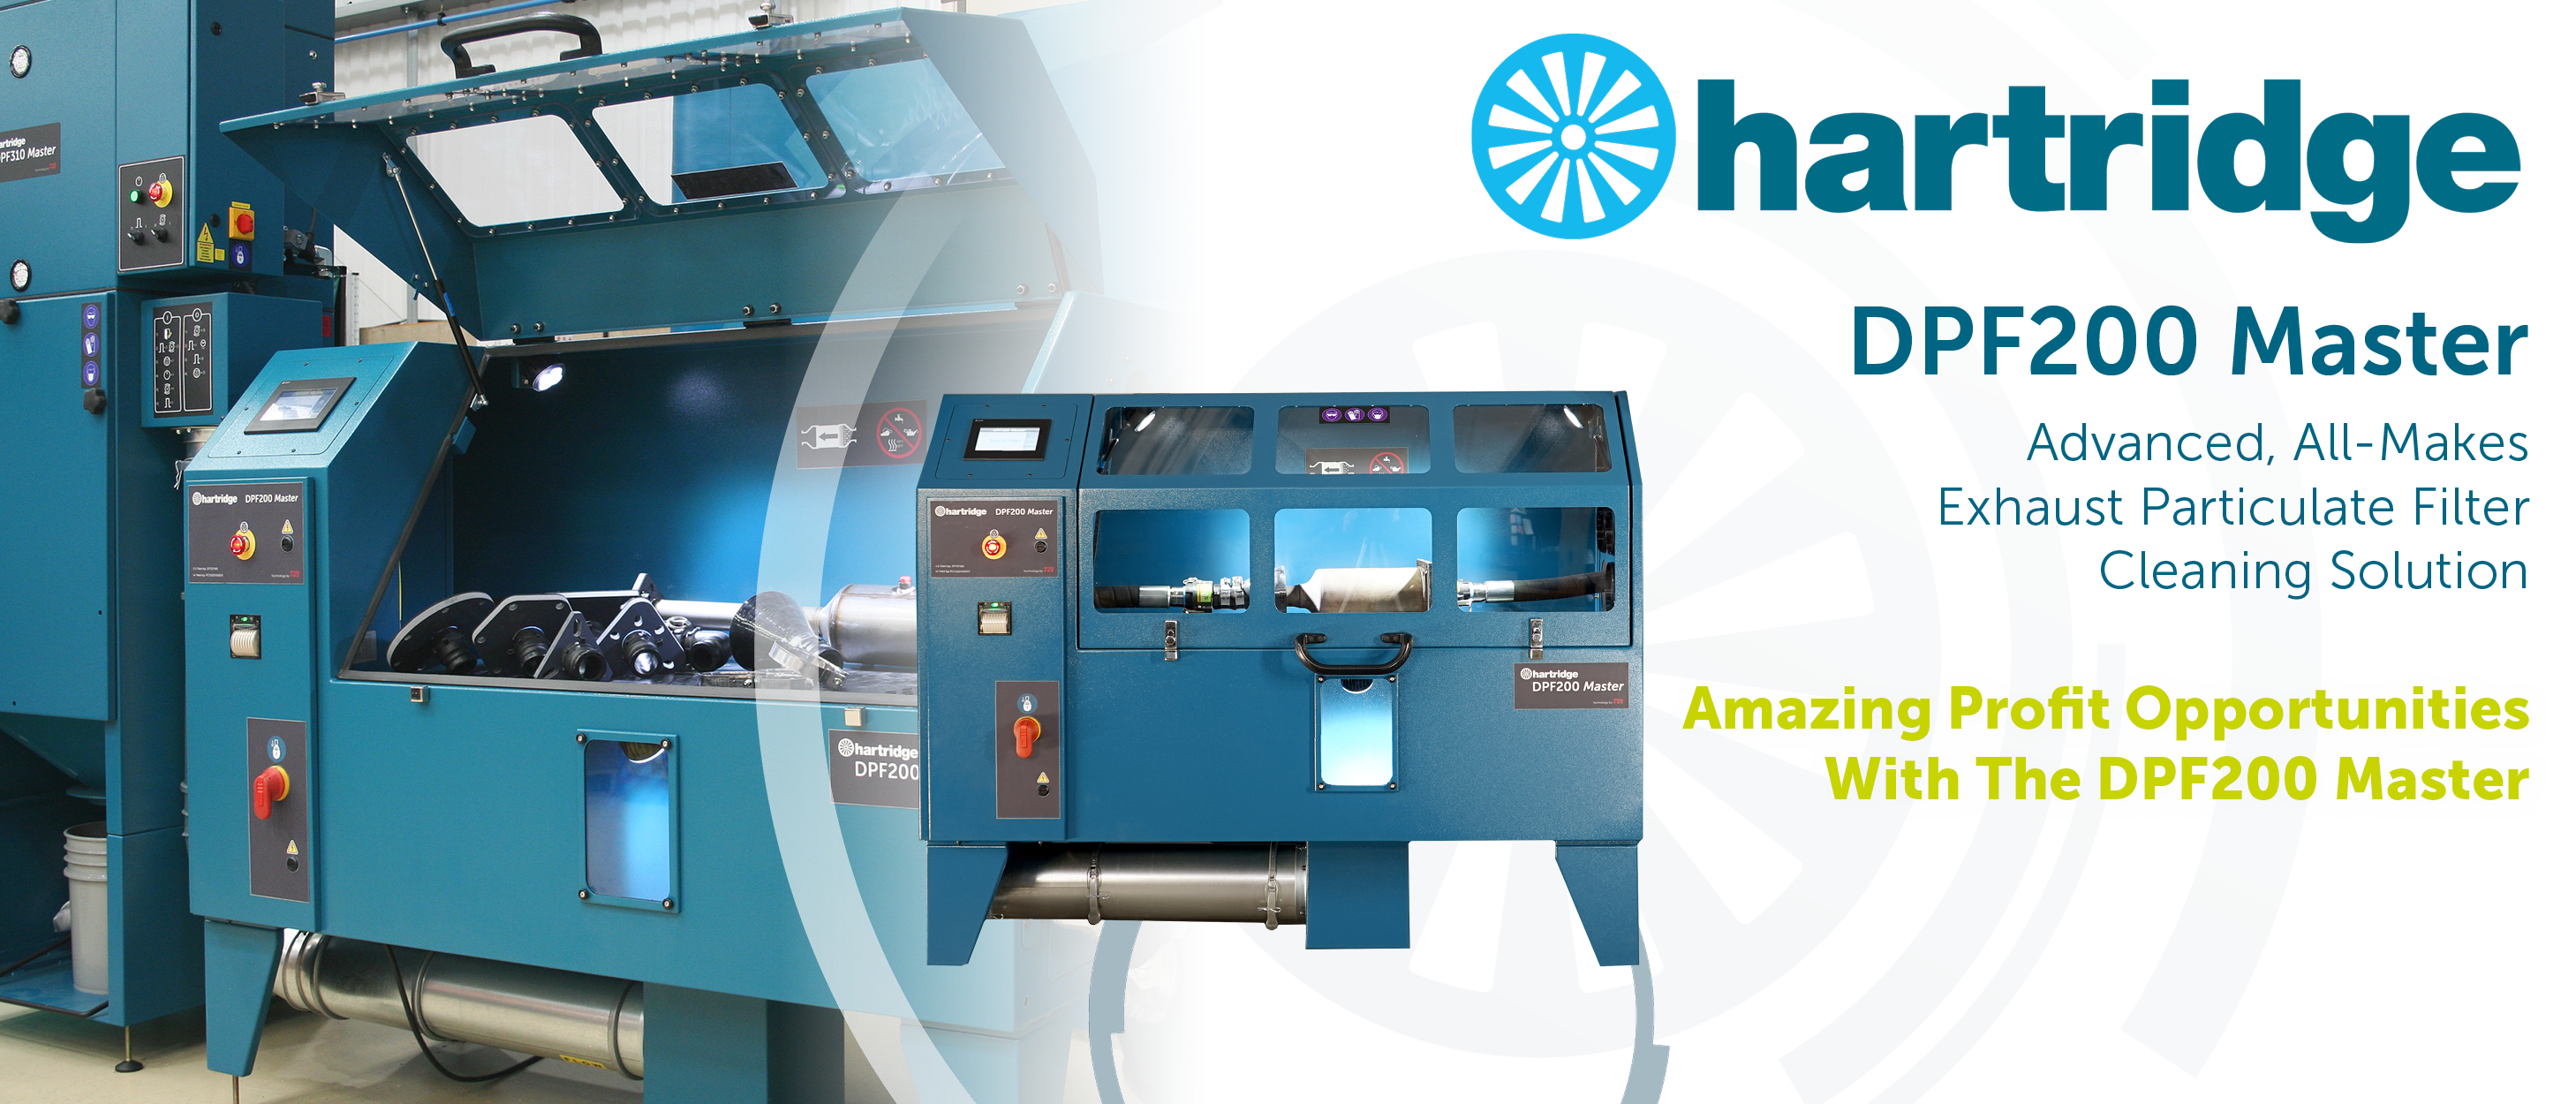 Welcome to the DPF200 Master